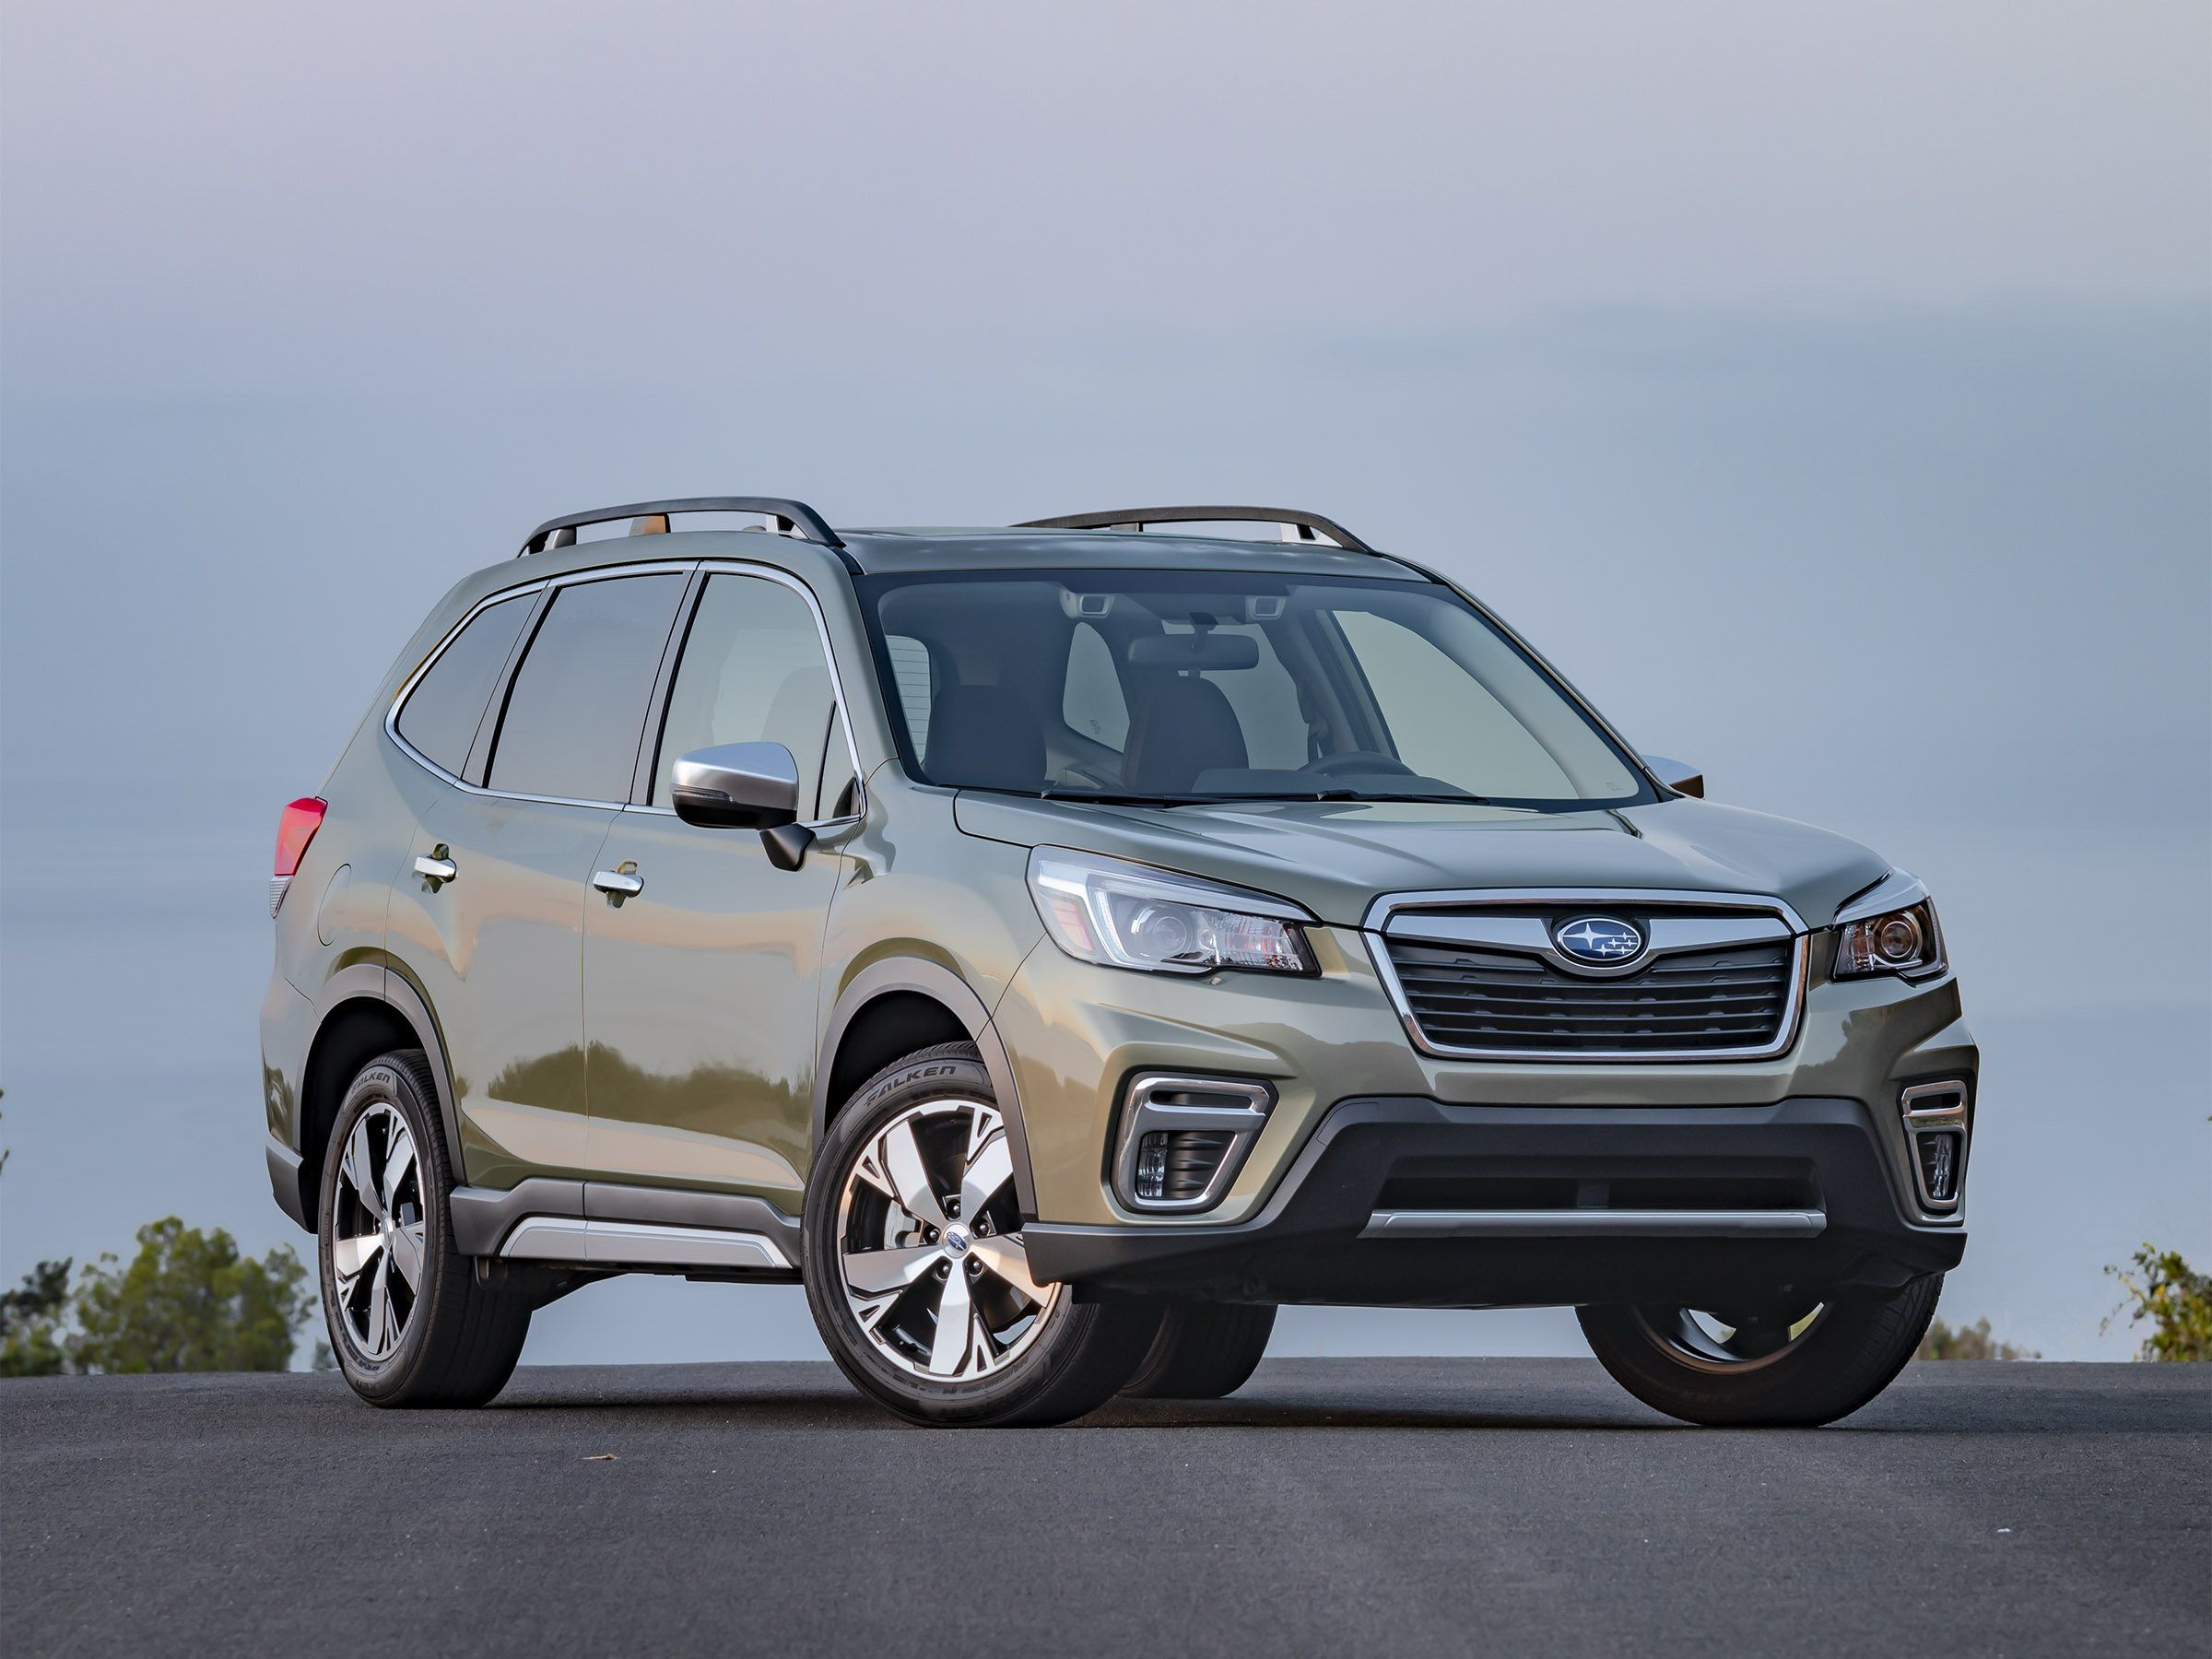 2021 Subaru forester Performance in 2020 (With images